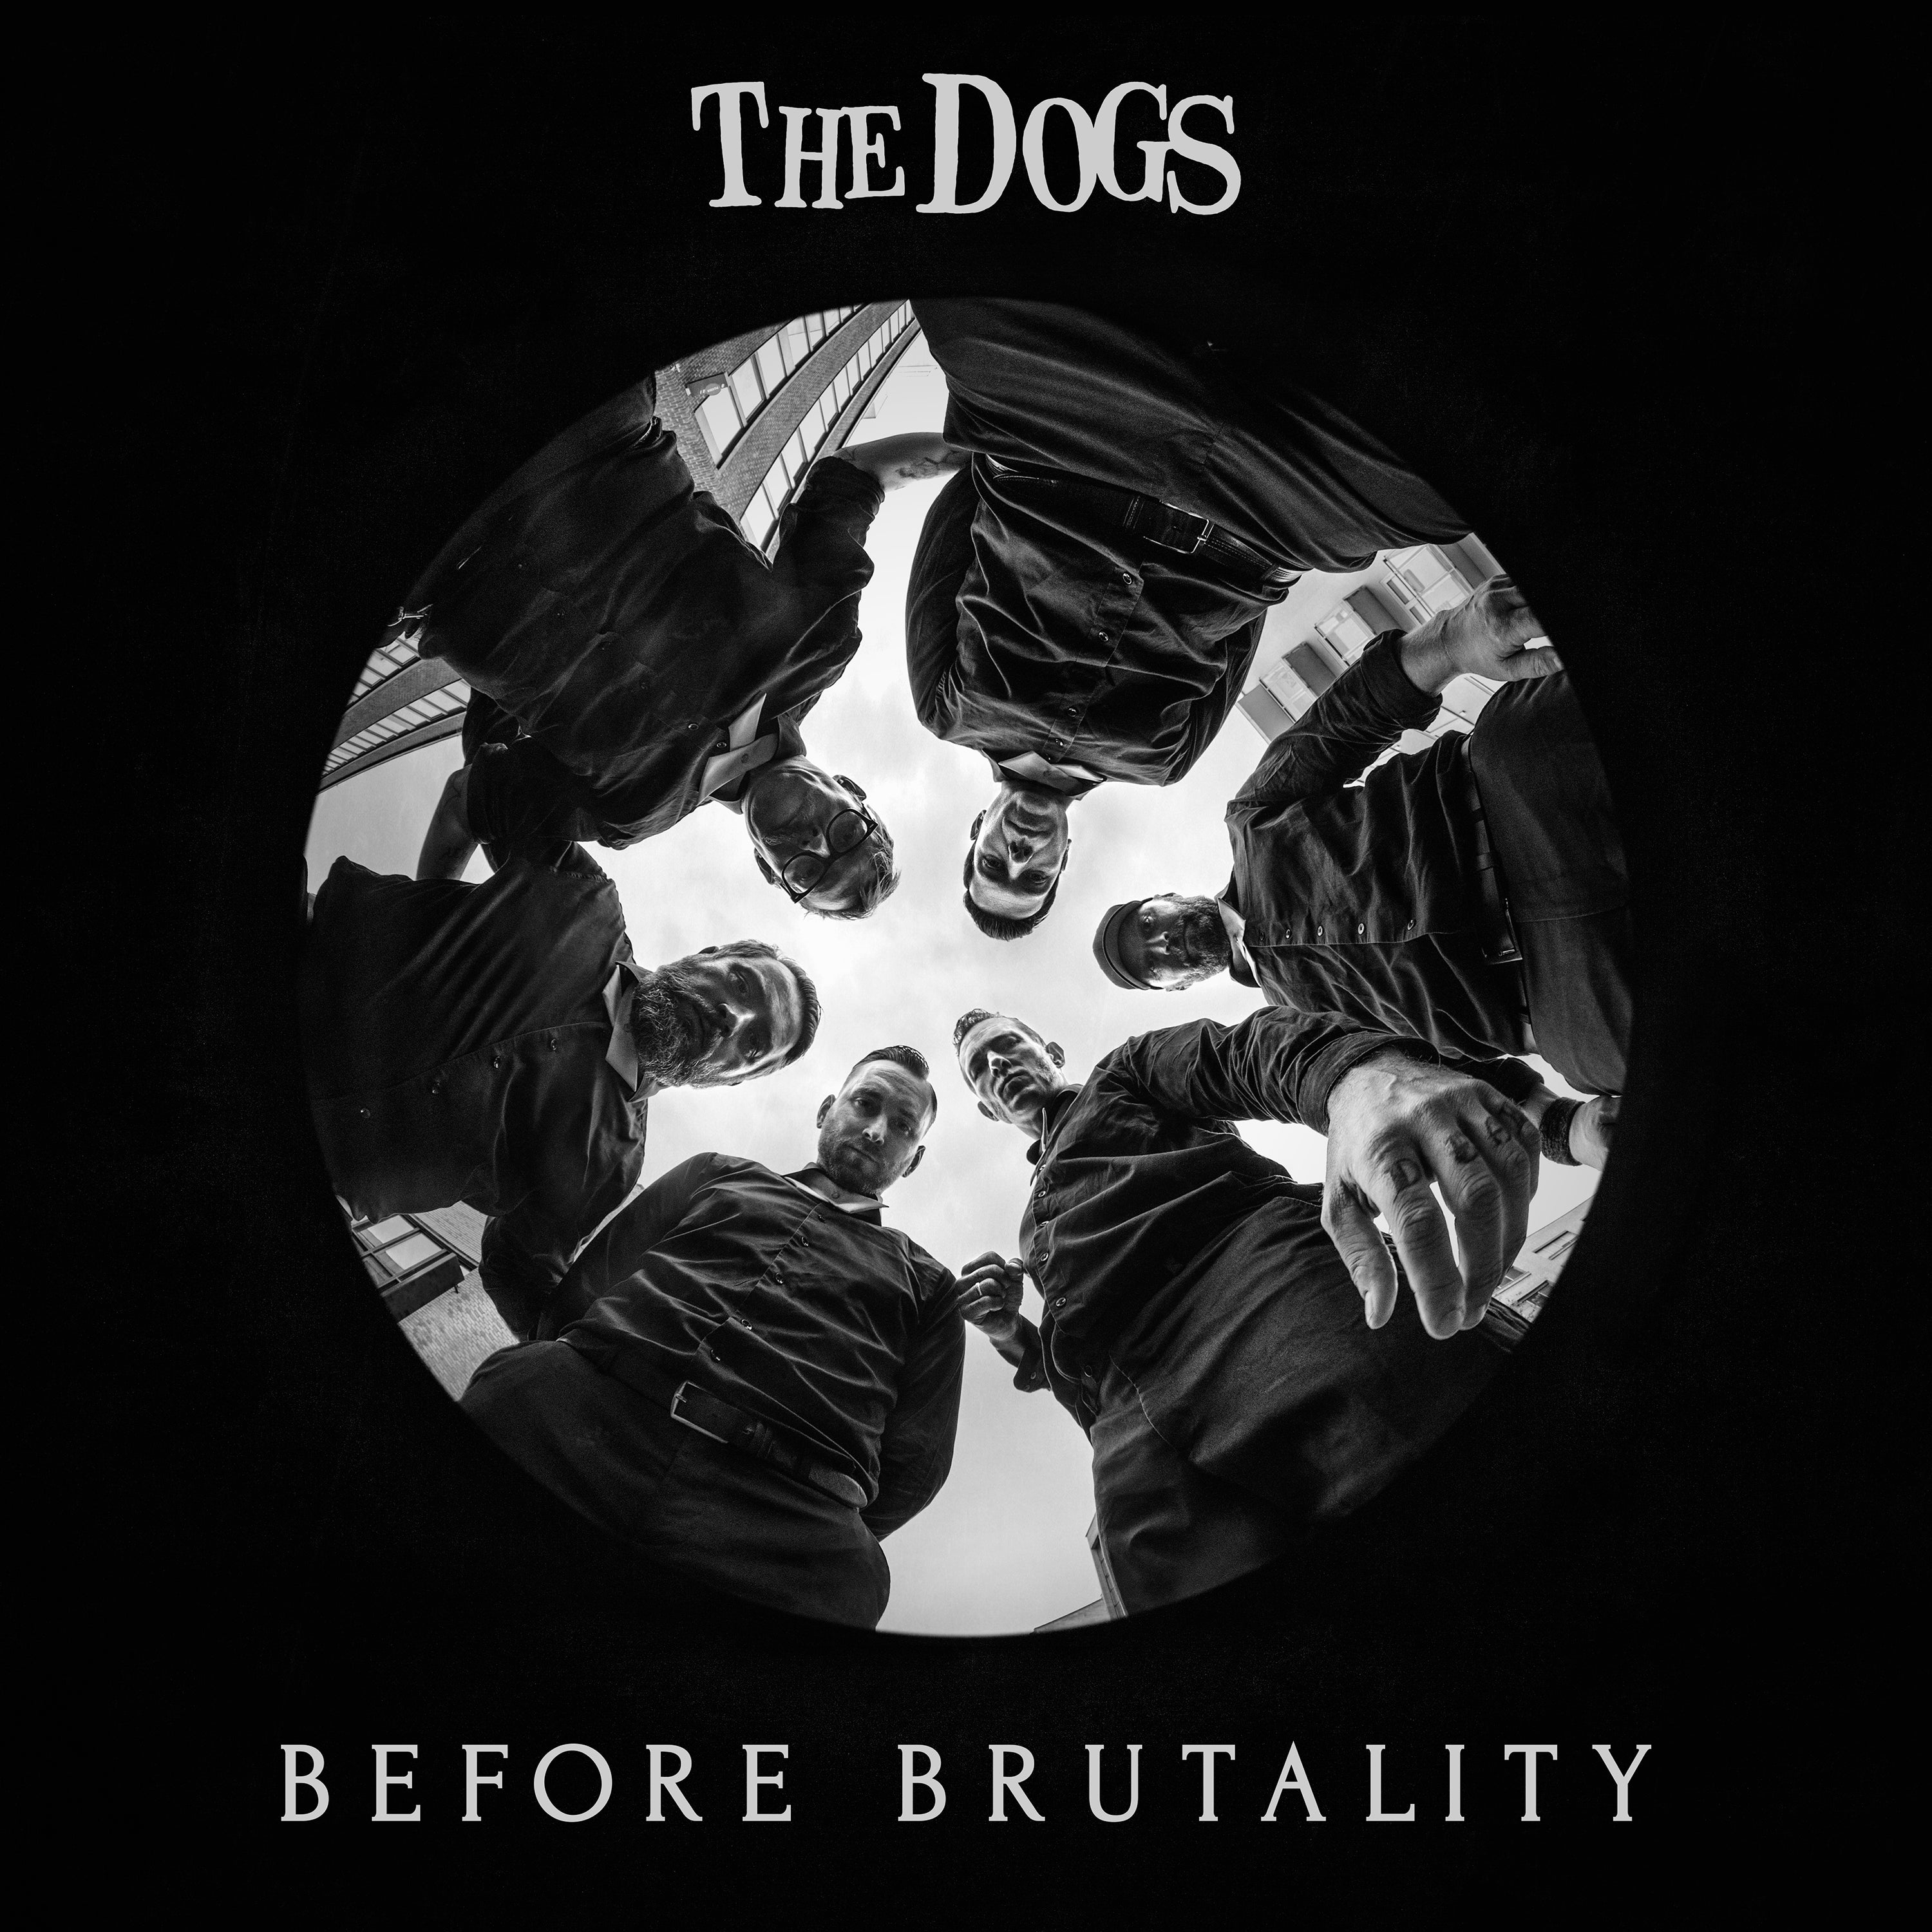 The Dogs - CD - Before Brutality (2019)